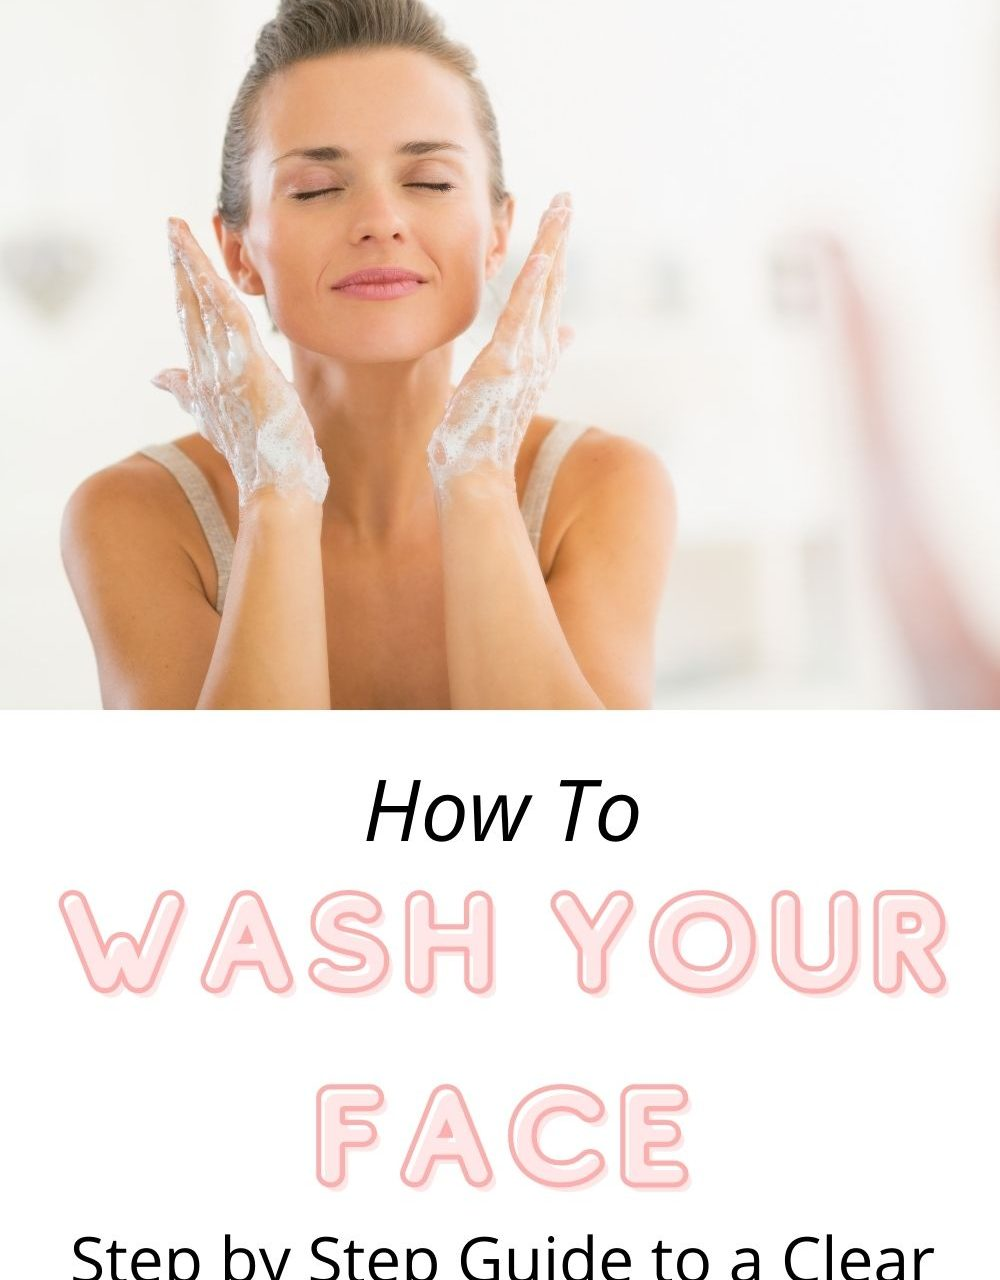 How To Wash Your Face: A Step By Step Guide To A Clear Complexion